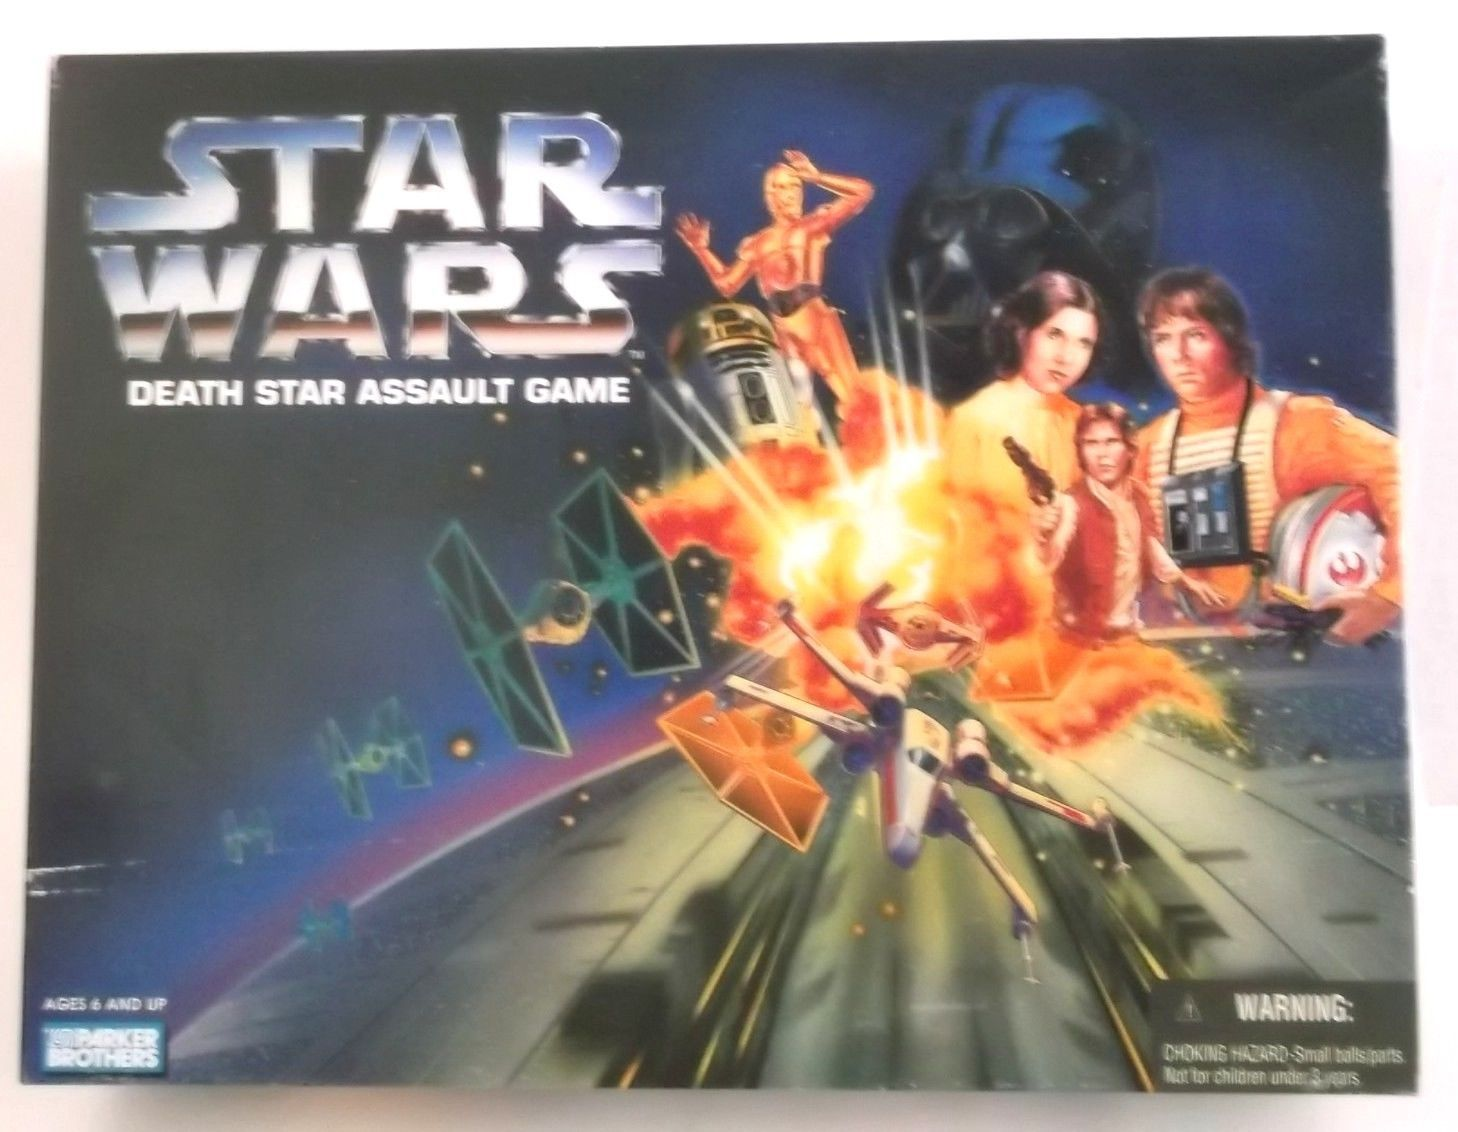 STAR WARS DEATH STAR ASSAULT GAME 1995 Parker Brothers 40390  - $24.99